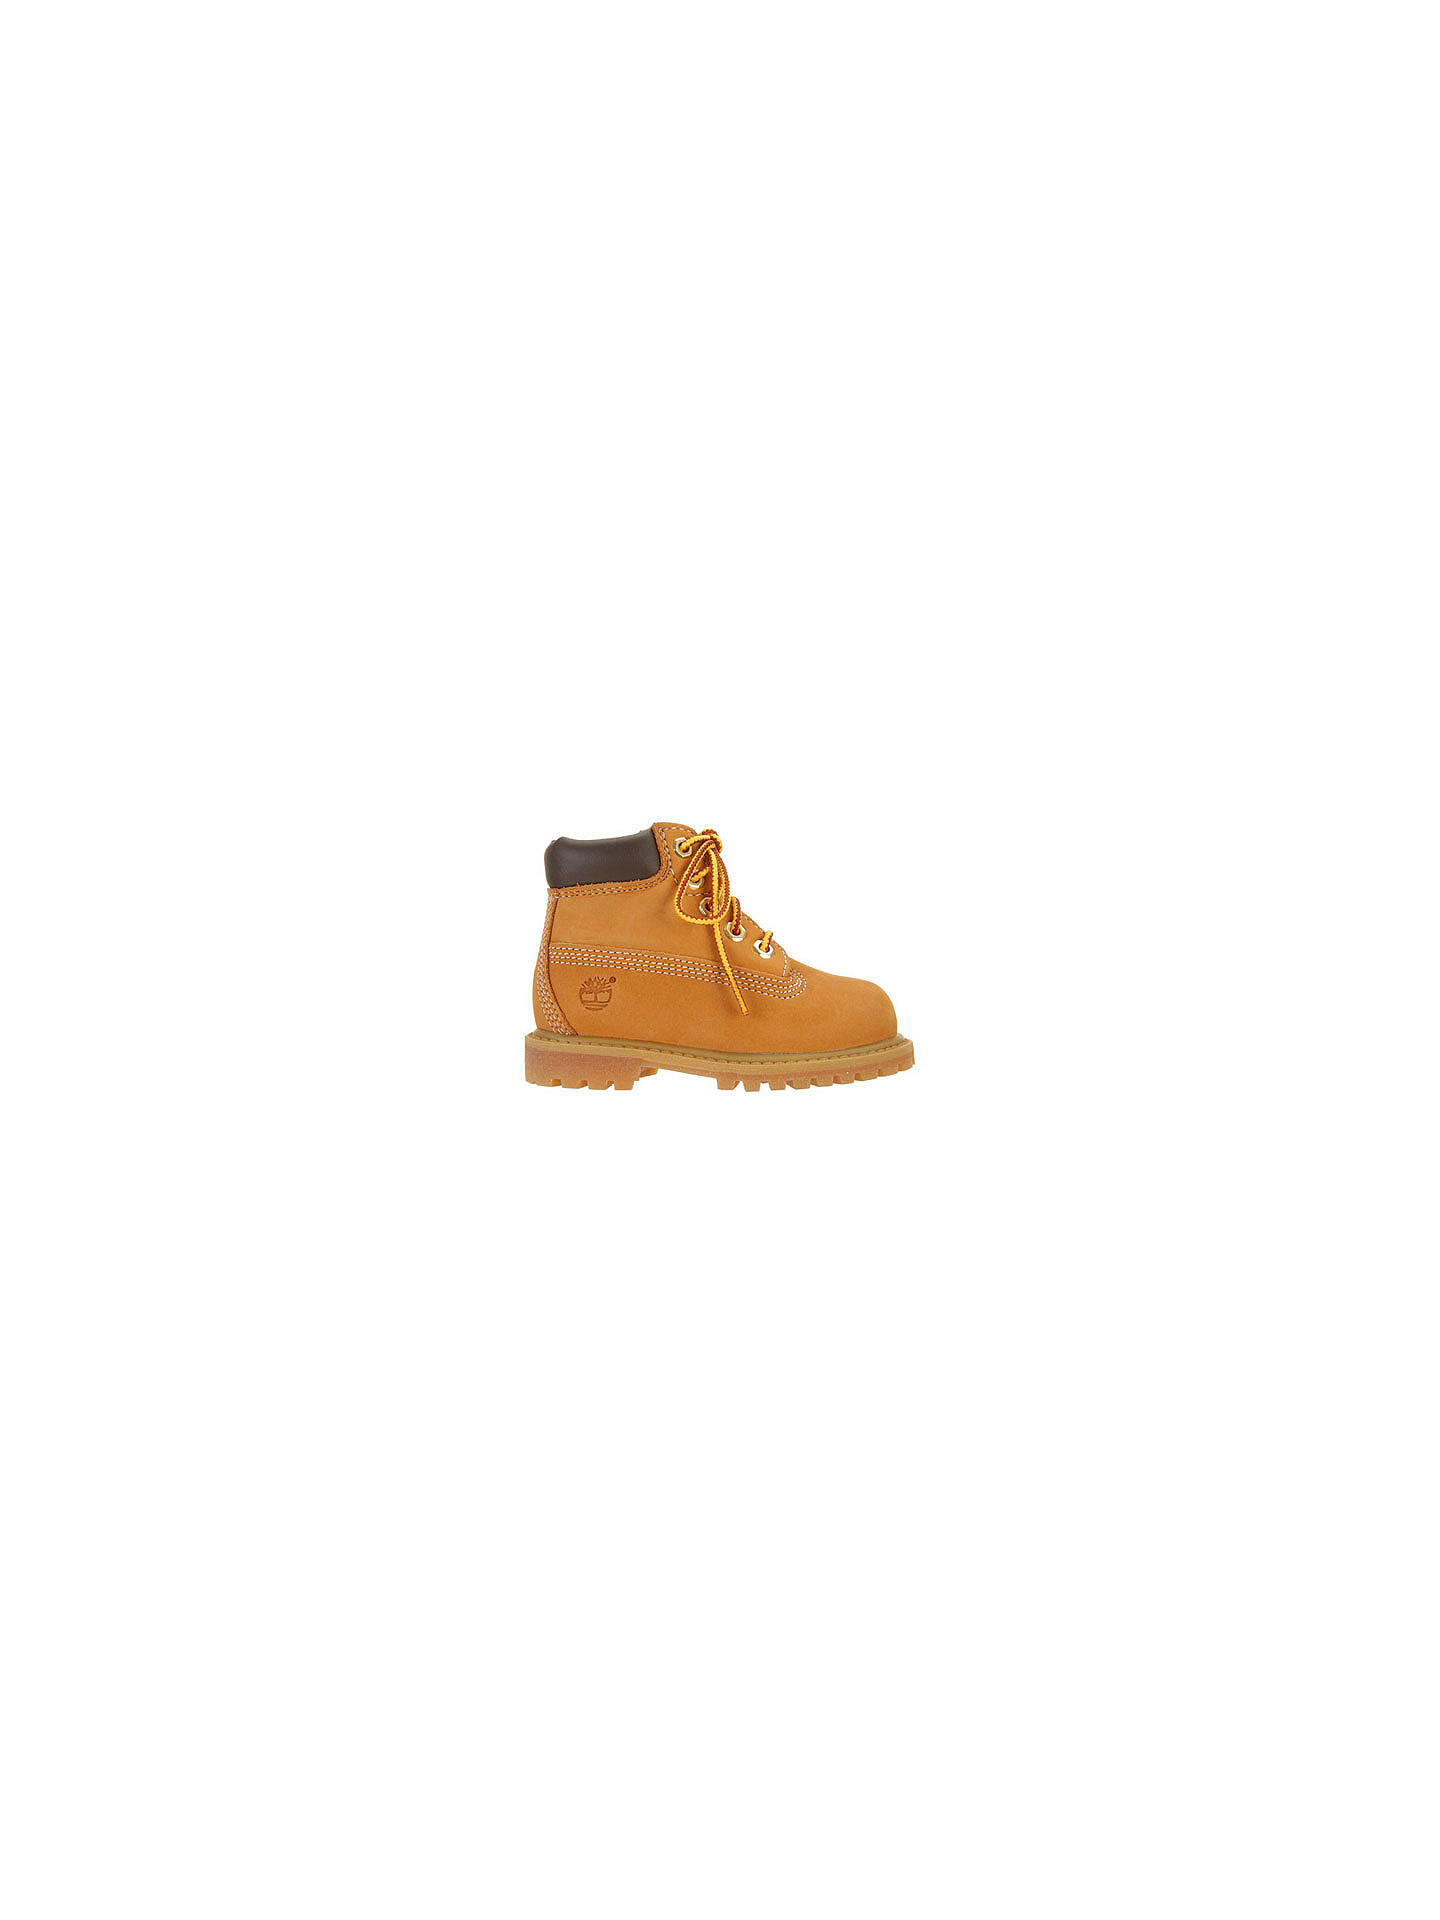 f7b1cf8d2a4e Buy Timberland Children s Classic Boots